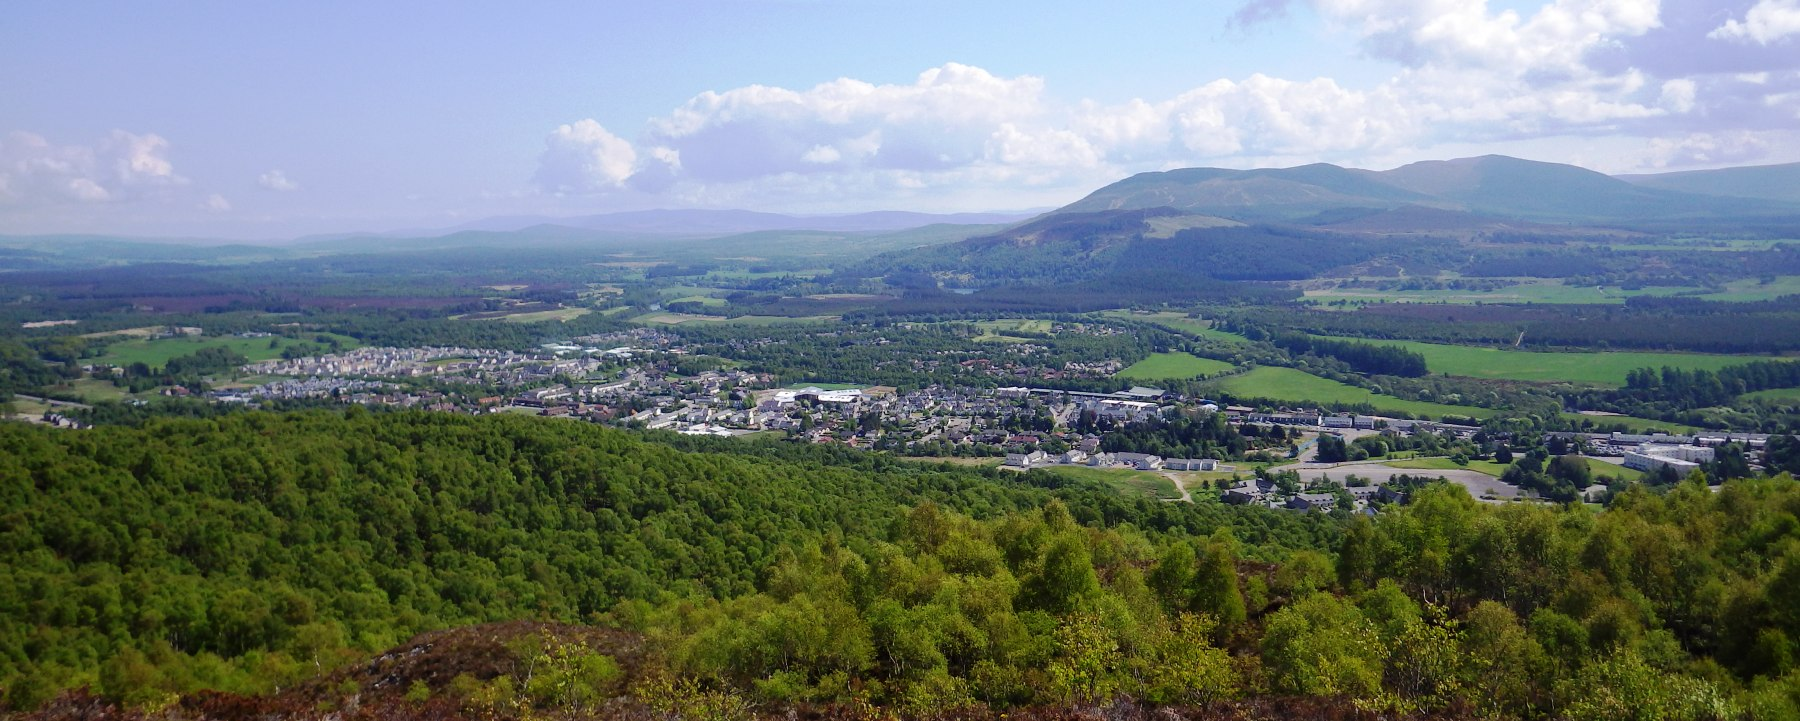 Maps Of Aviemore Within The Cairngorms National Park